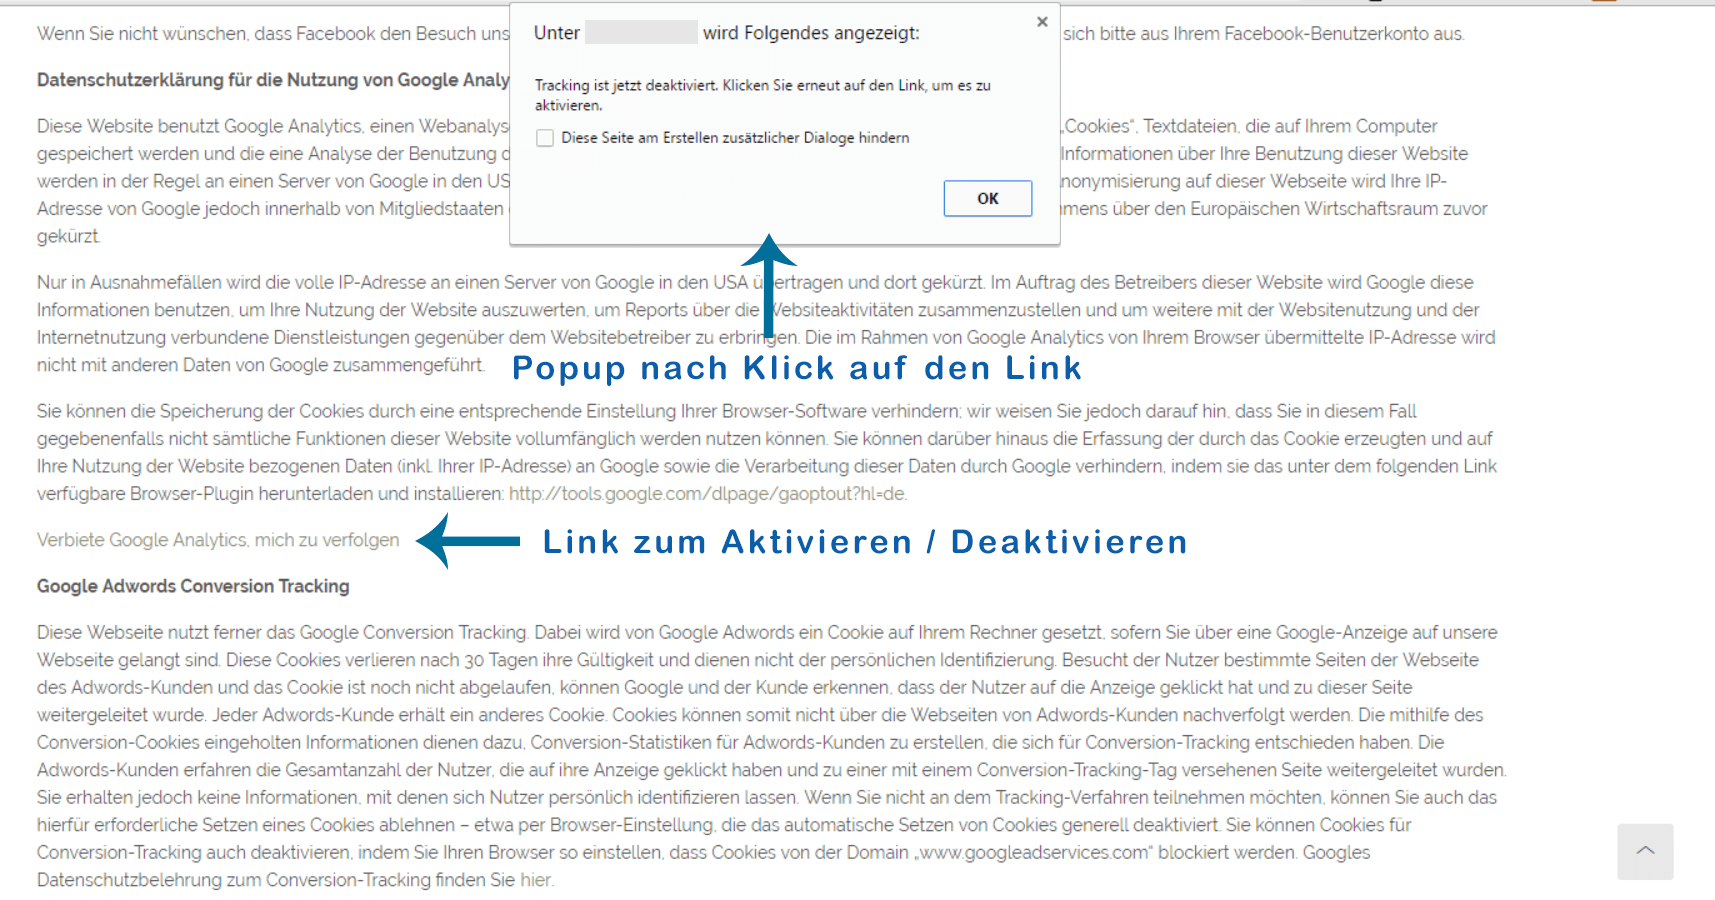 Activation / deactivation link with popup, on the page